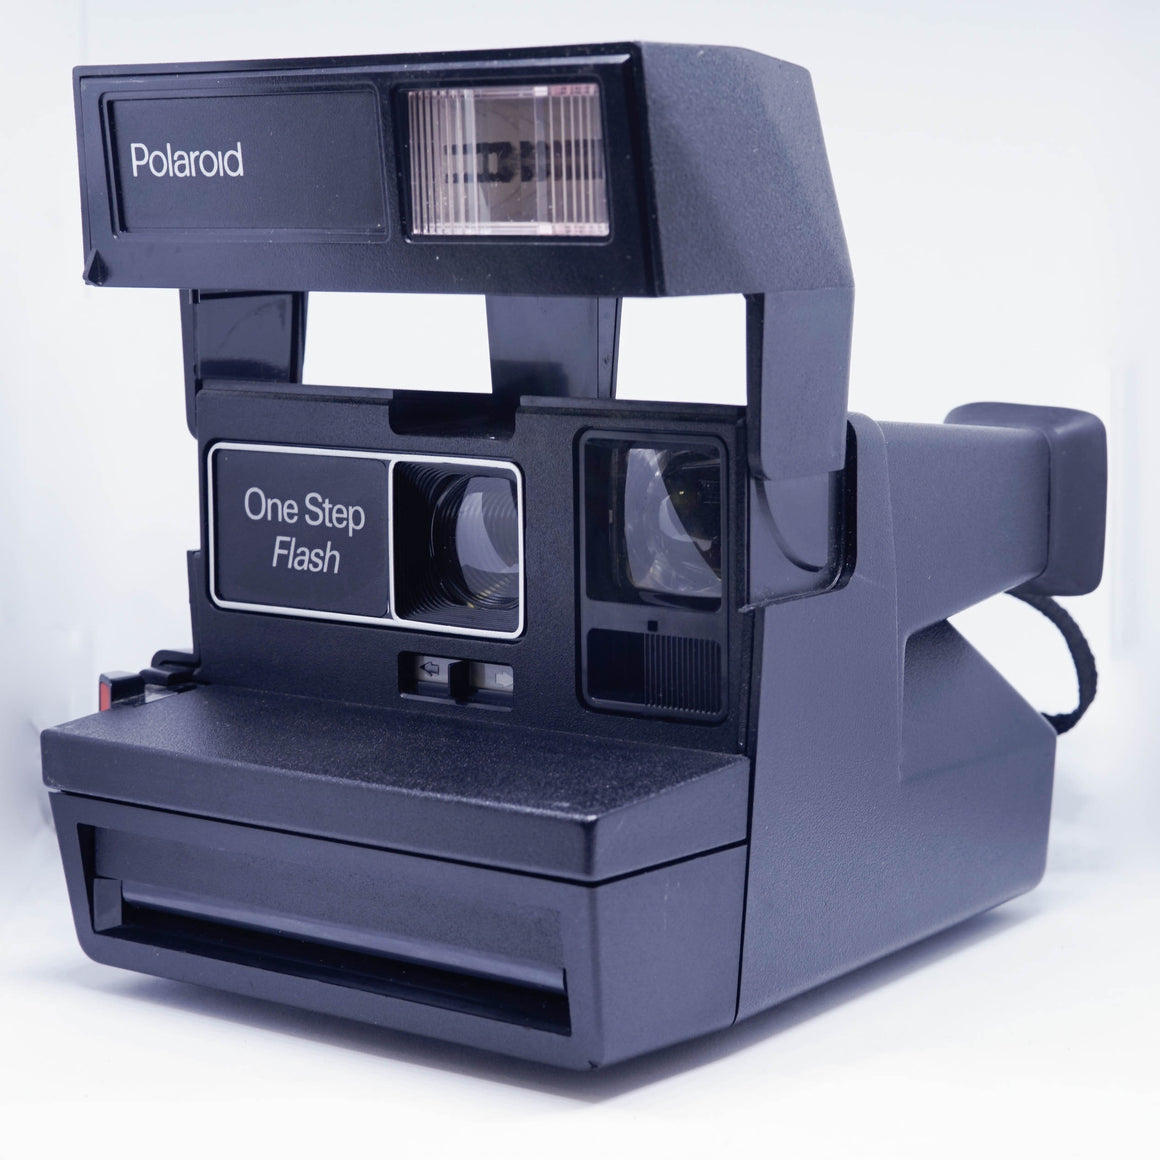 Black Polaroid 600 One Step Flash Instant Camera